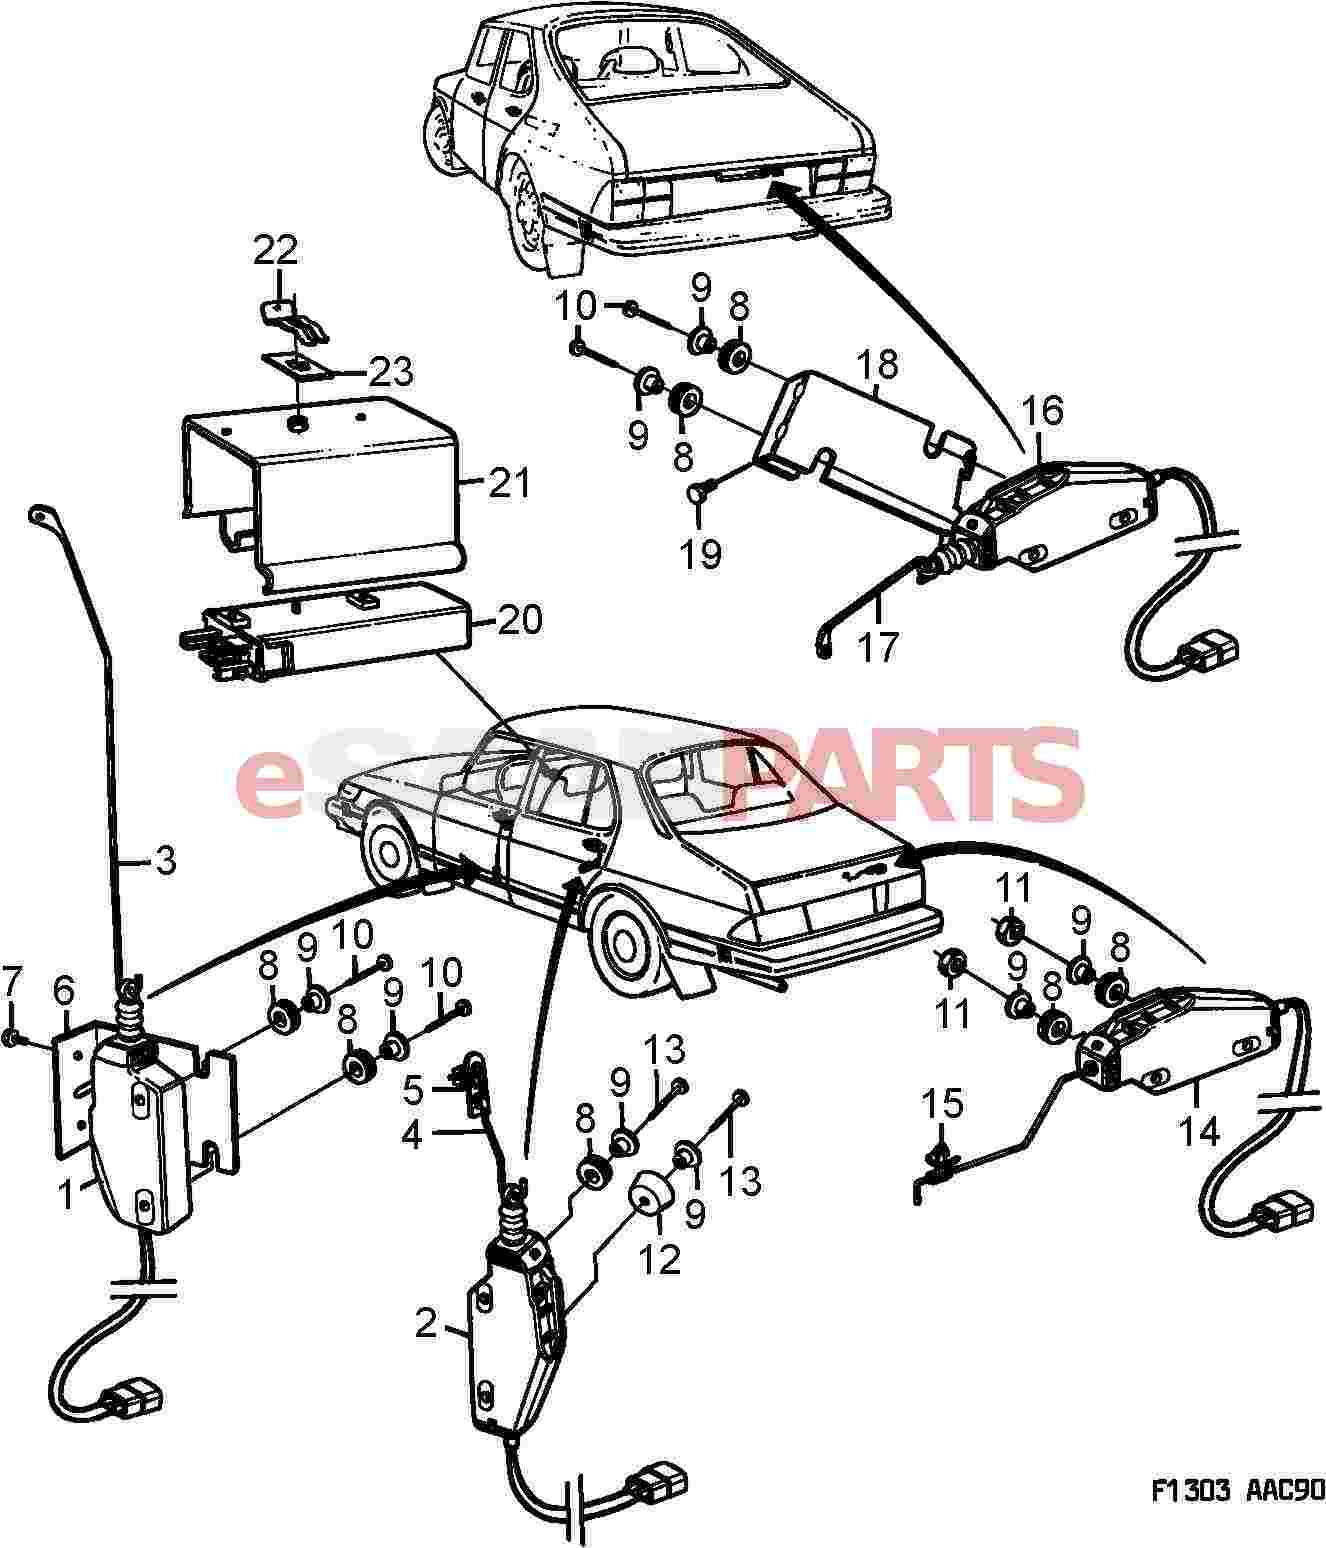 1992 toyota corolla wiring diagram atwood water heater relay mr2 coolant html imageresizertool com